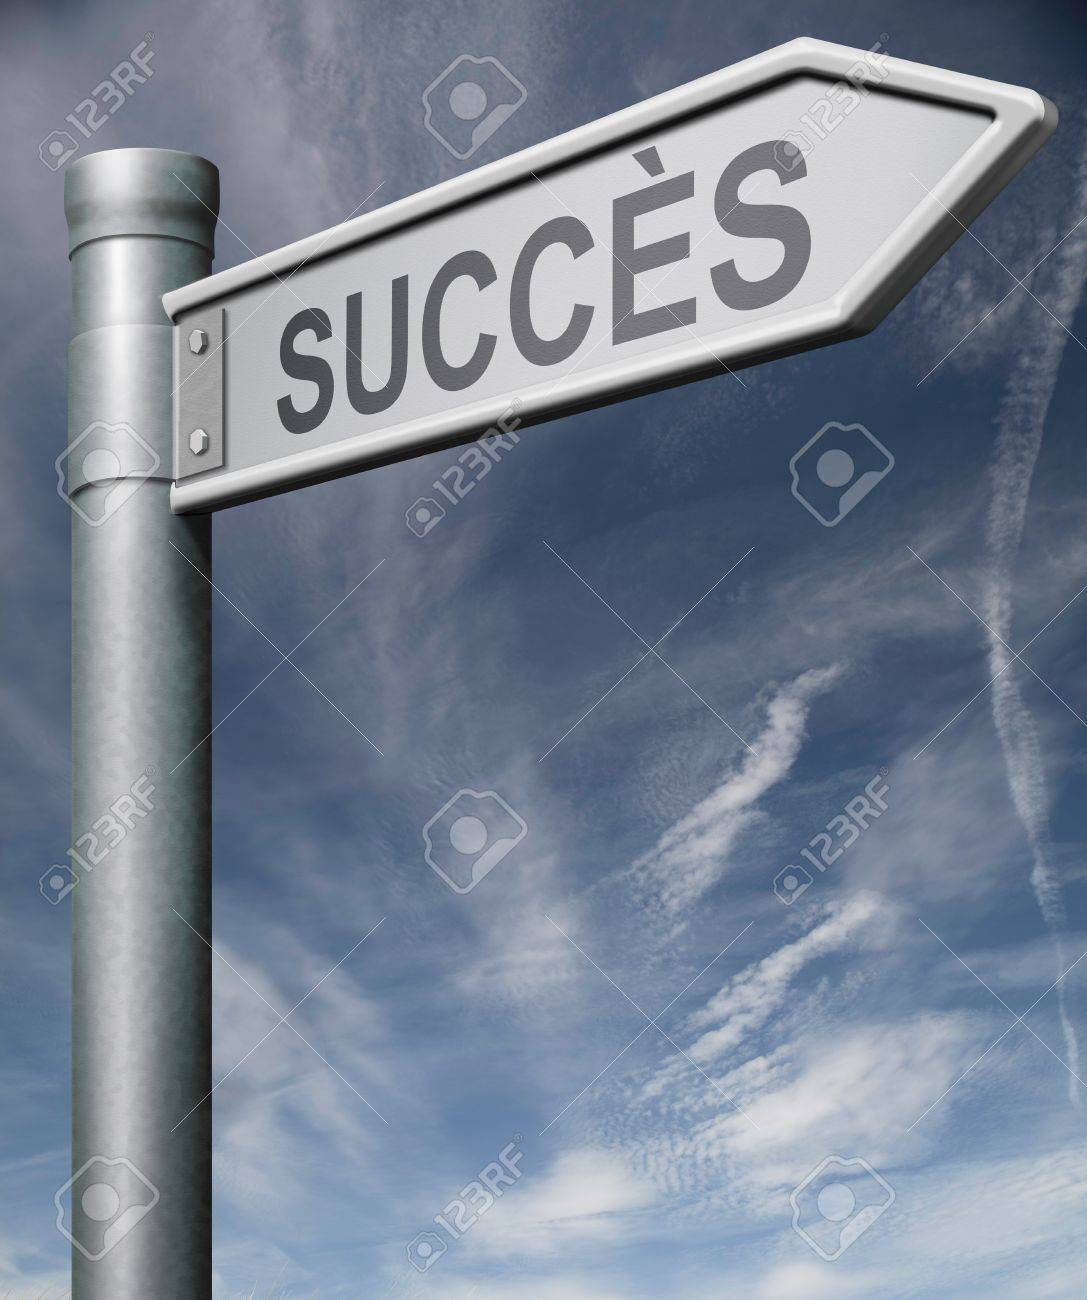 success French sign pointing arrow thumbs up way and key to success in business life and finance Stock Photo - 9005487